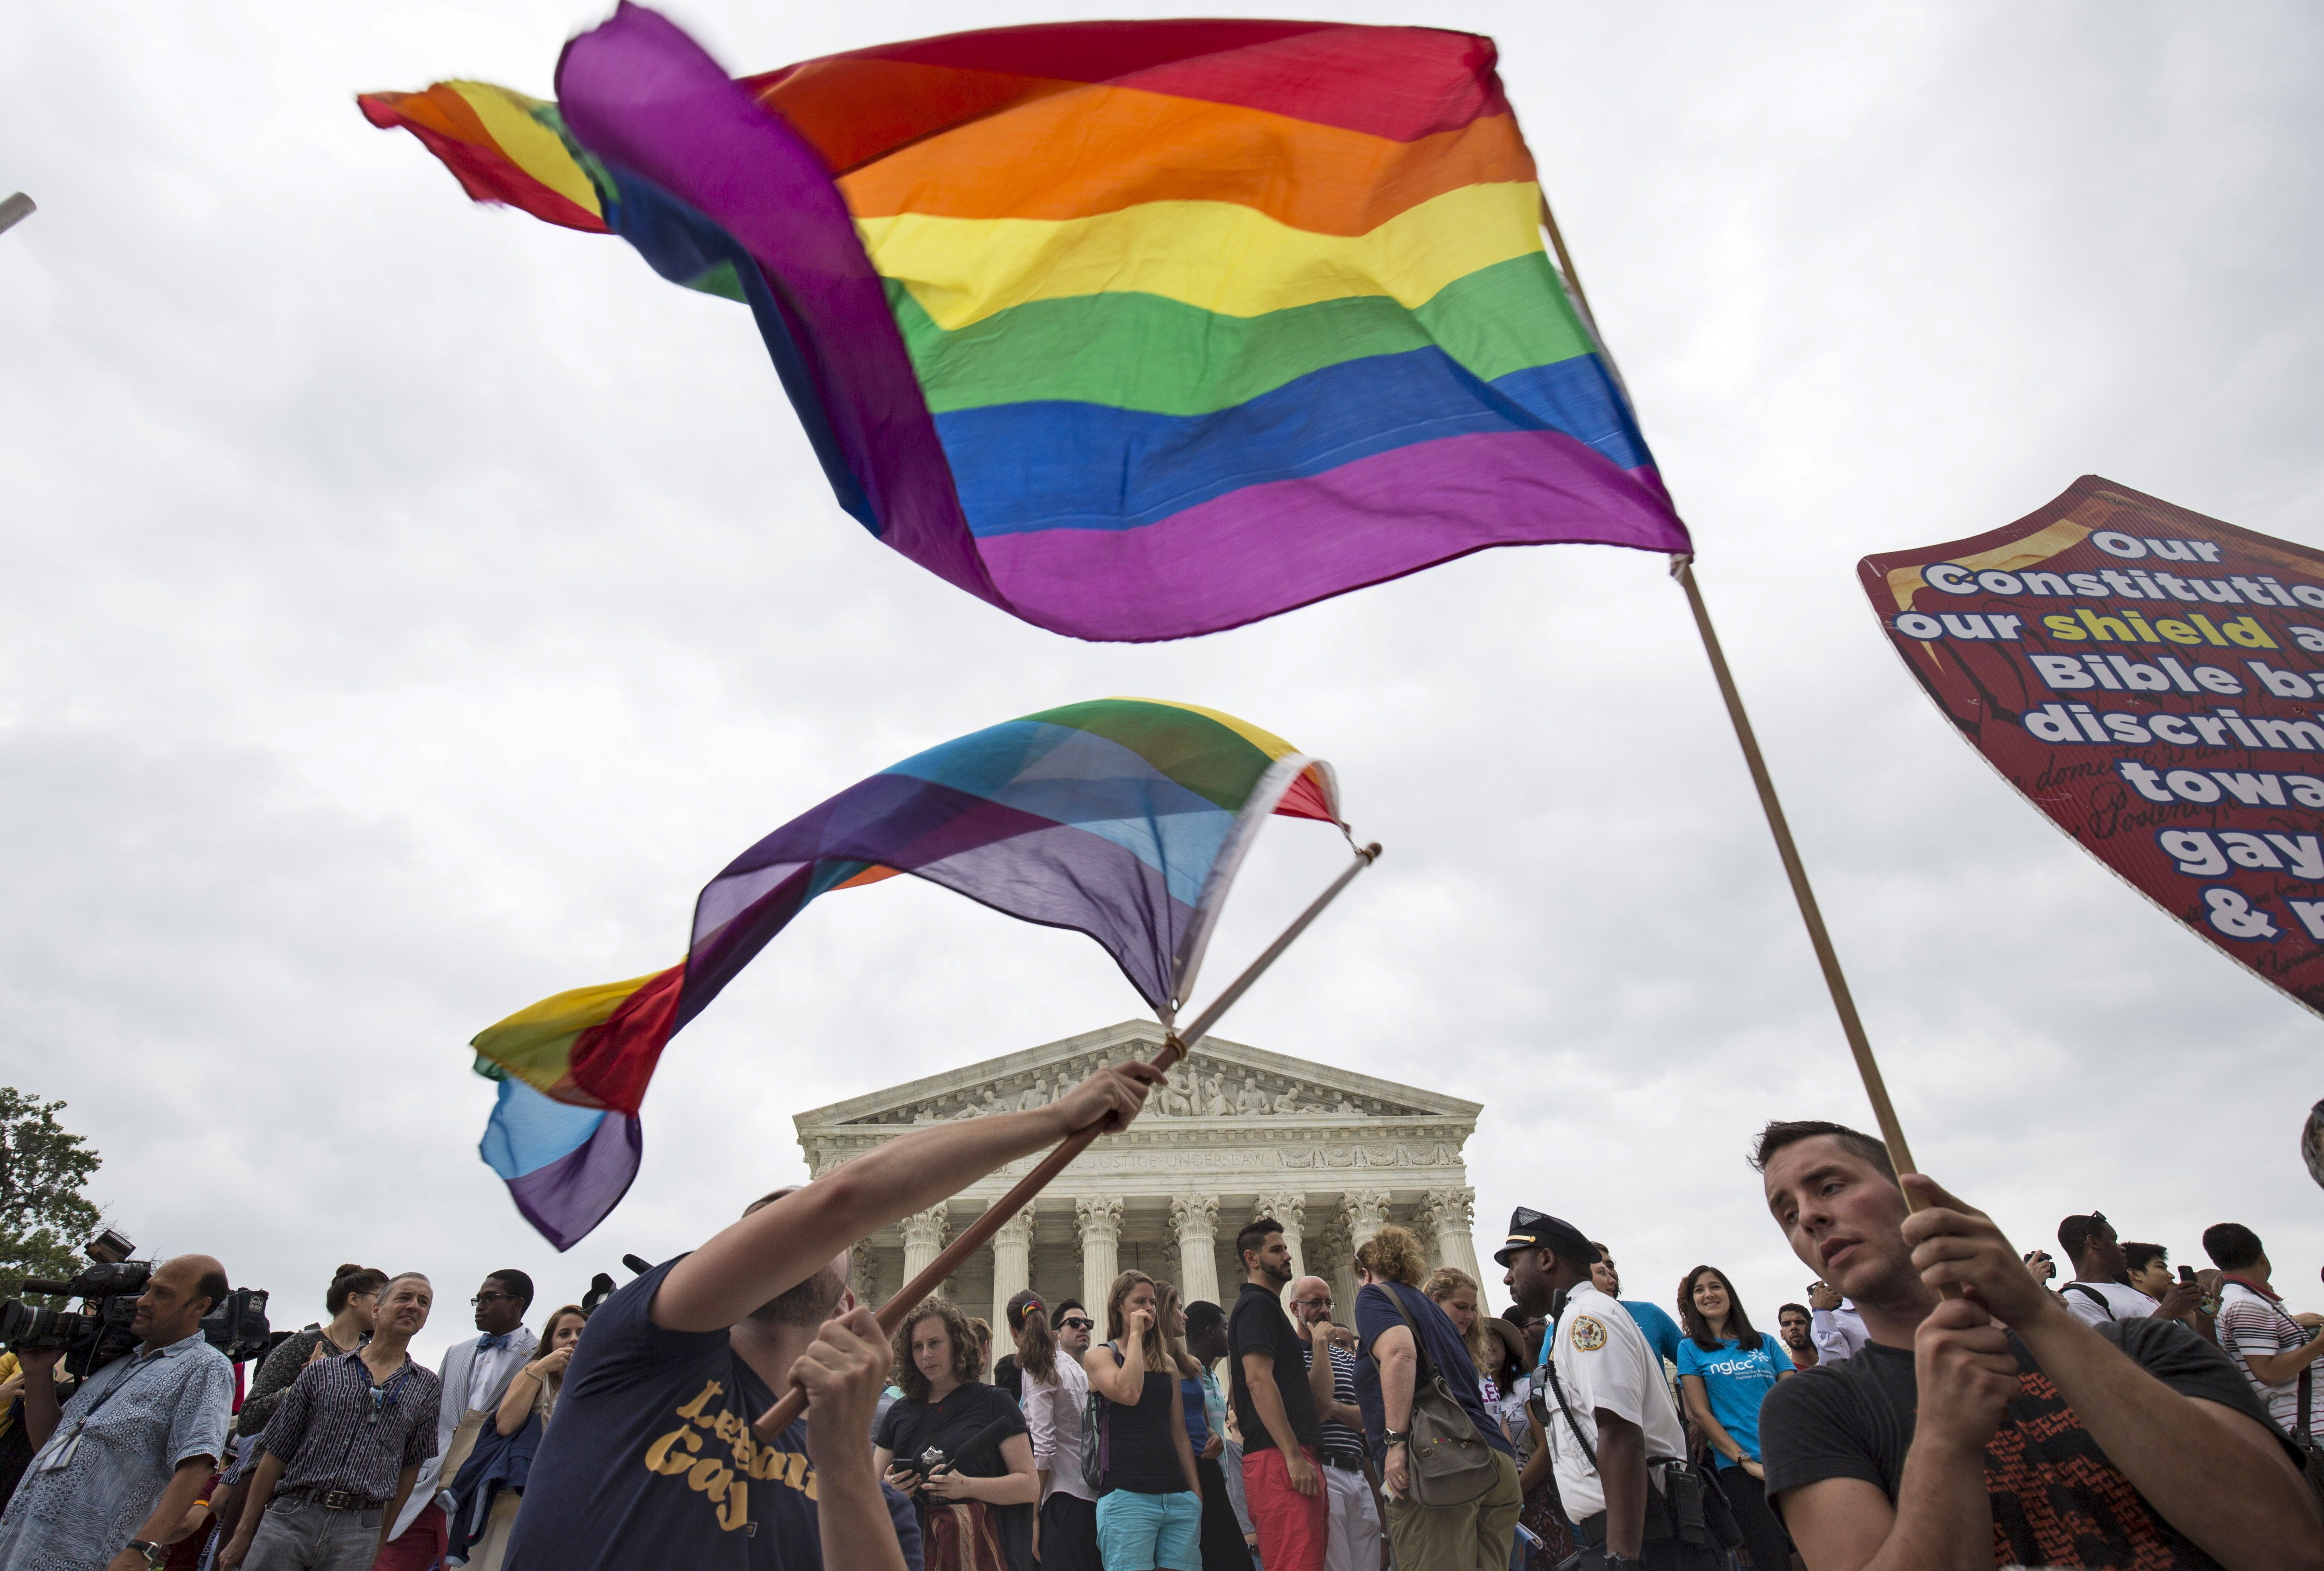 gay rights thesis Argumentative essay on same sex marriage legalizing same sex marriage would recognize the american dream of equal rights for this argumentative essay on gay.